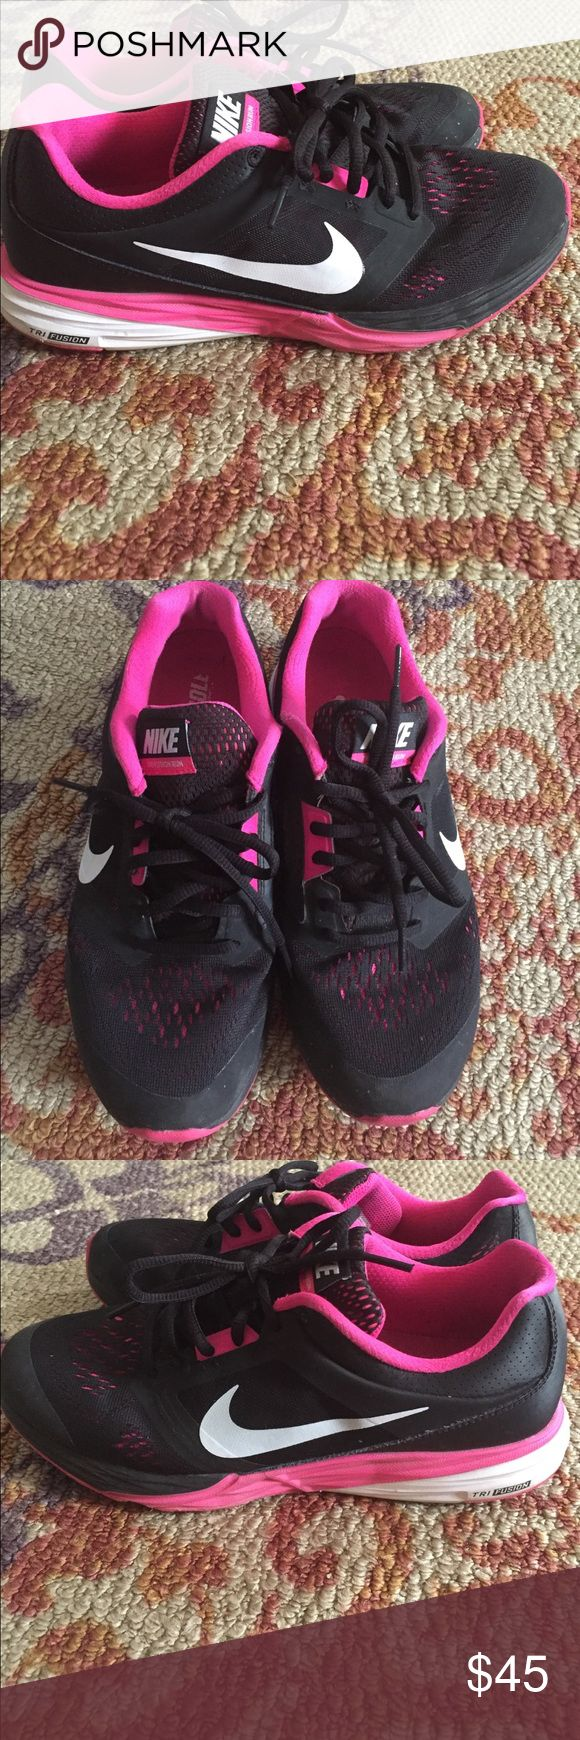 Tri fusion nike's Black pink and white nike's Nike Shoes Athletic Shoes